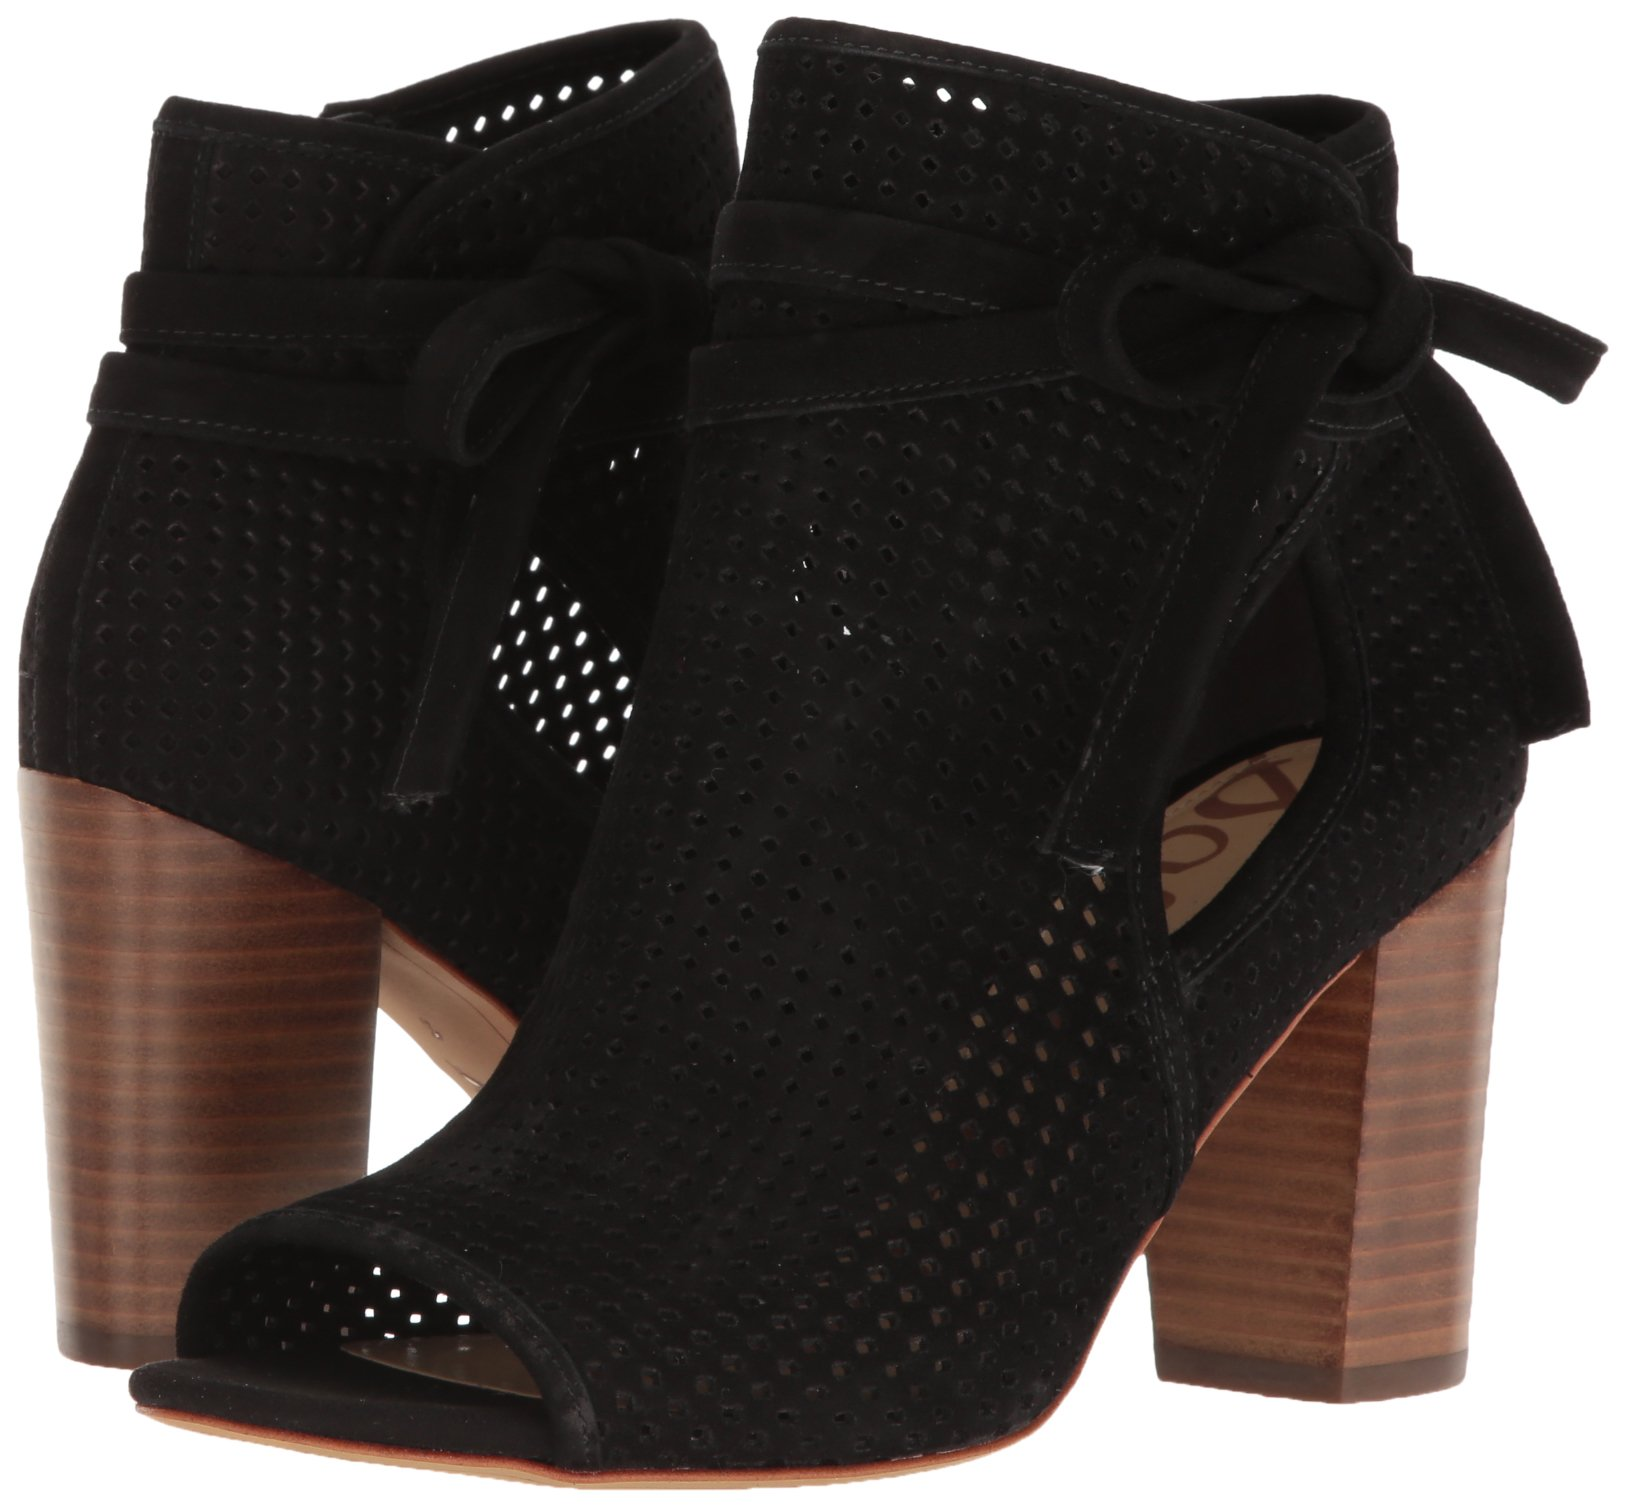 Sam Edelman Women's Ellery, Black, 8.5 M US by Sam Edelman (Image #6)